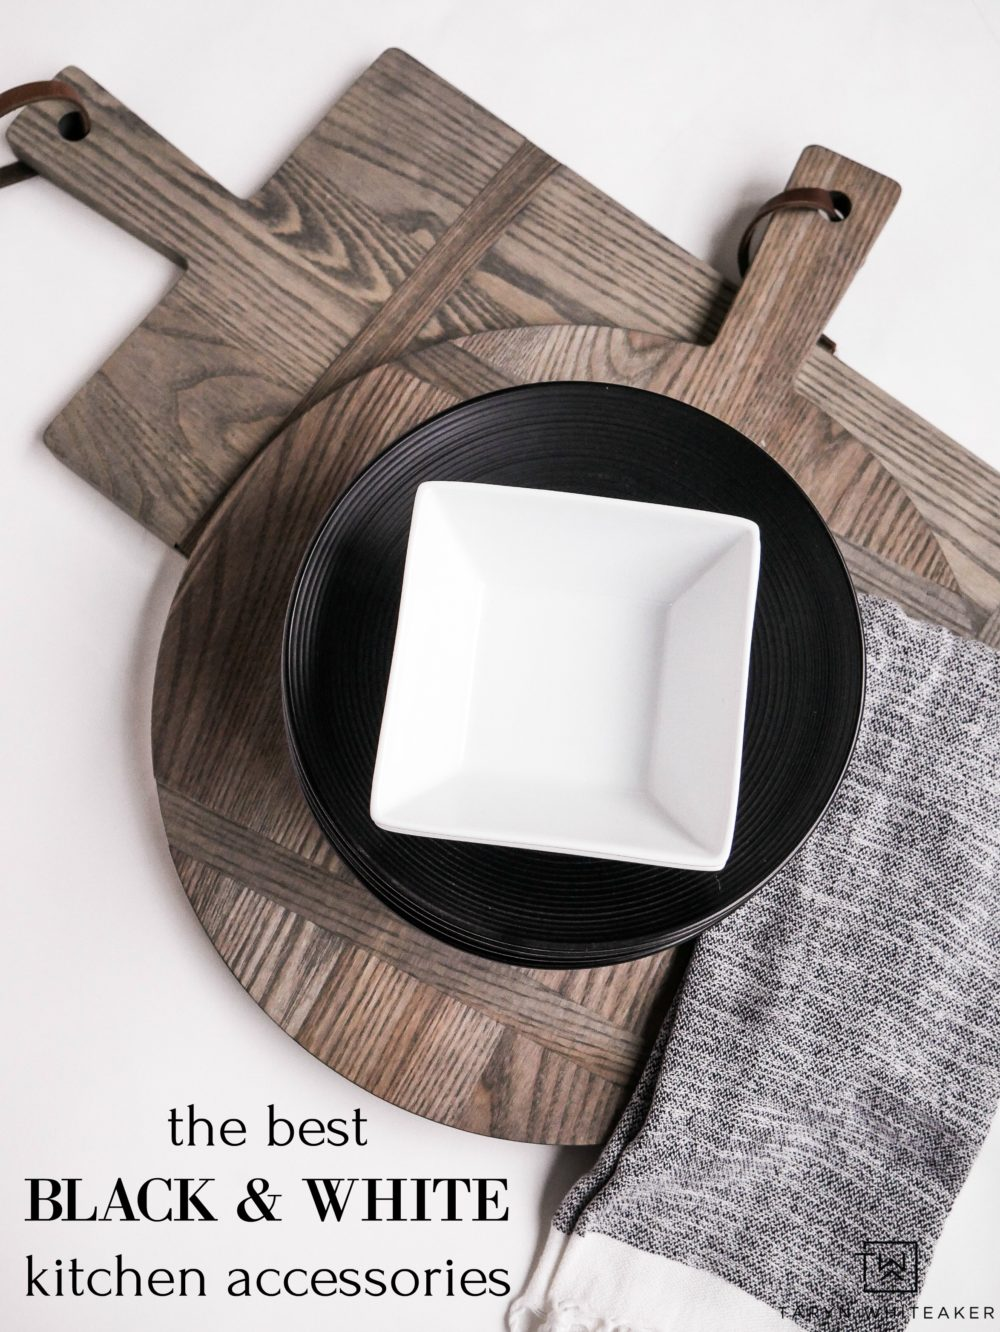 The Best Black and White Kitchen Accessories - Taryn Whiteaker